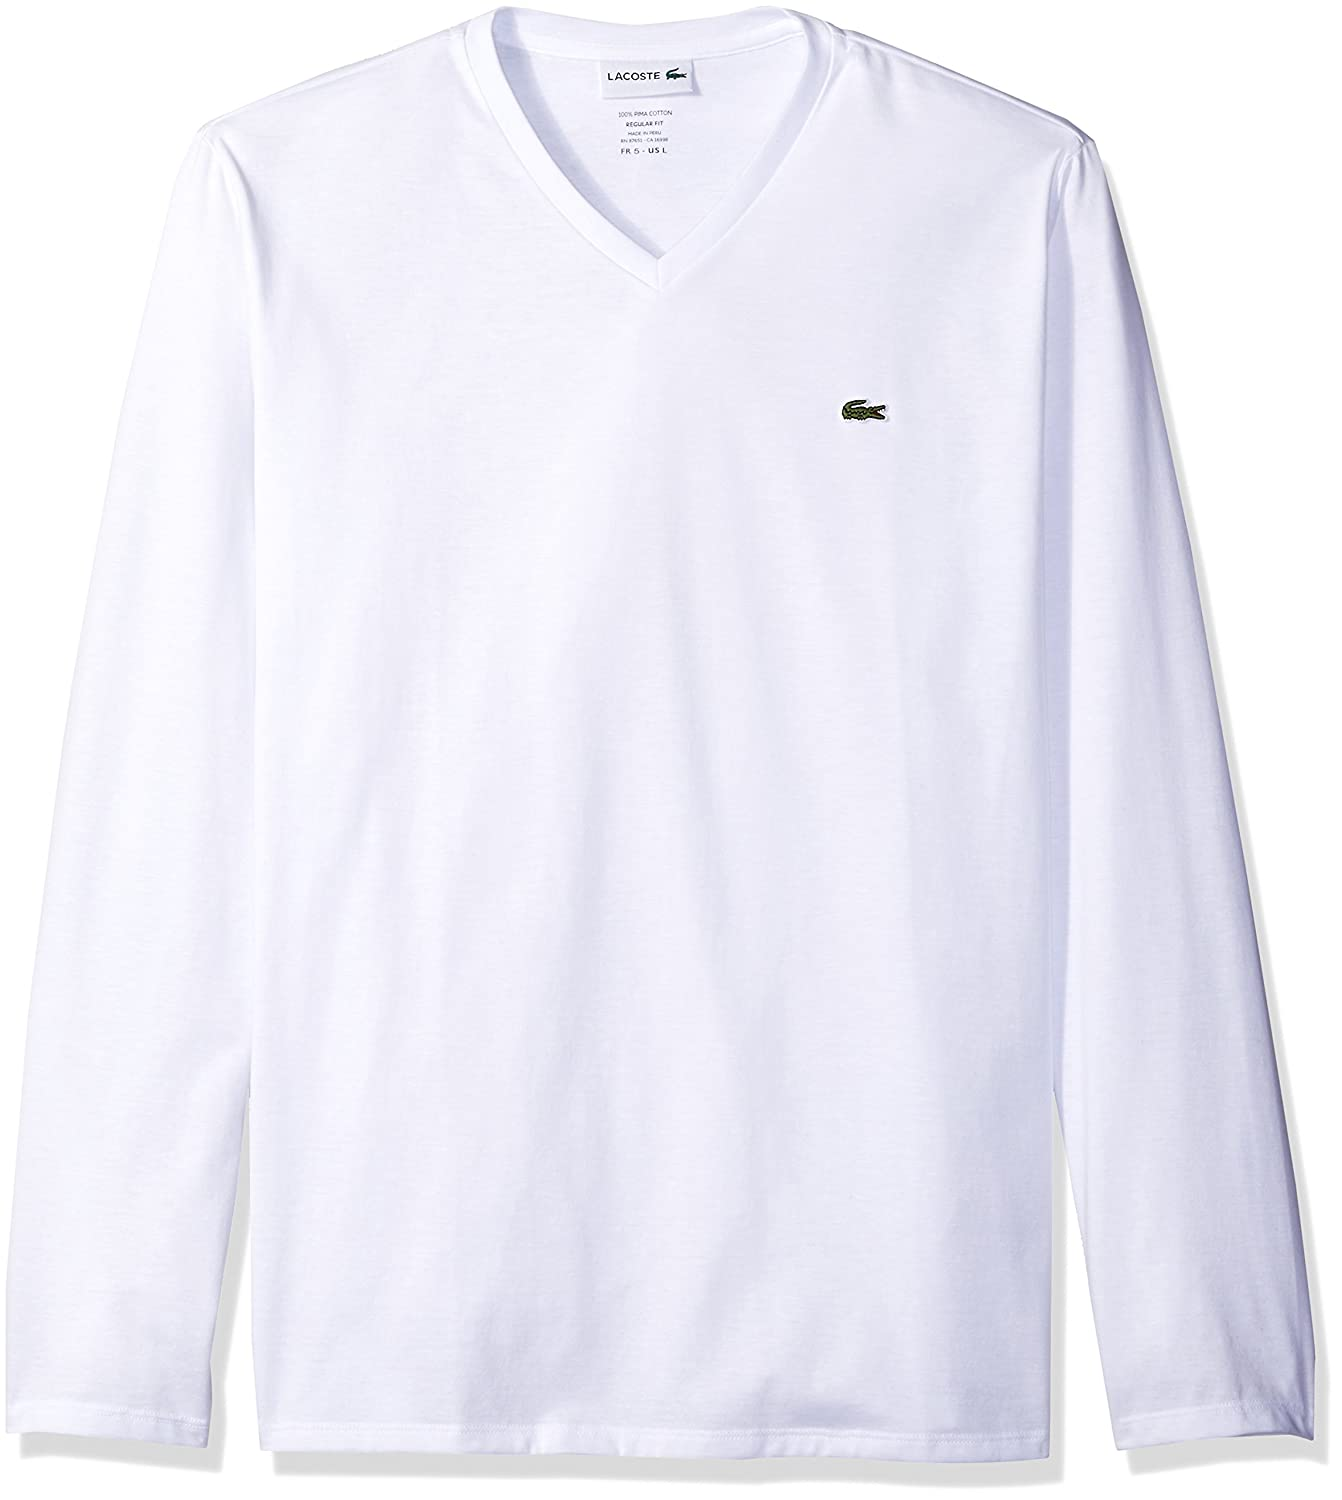 Lacoste Mens Standard Long Sleeve V Neck T-Shirt TH6711-51